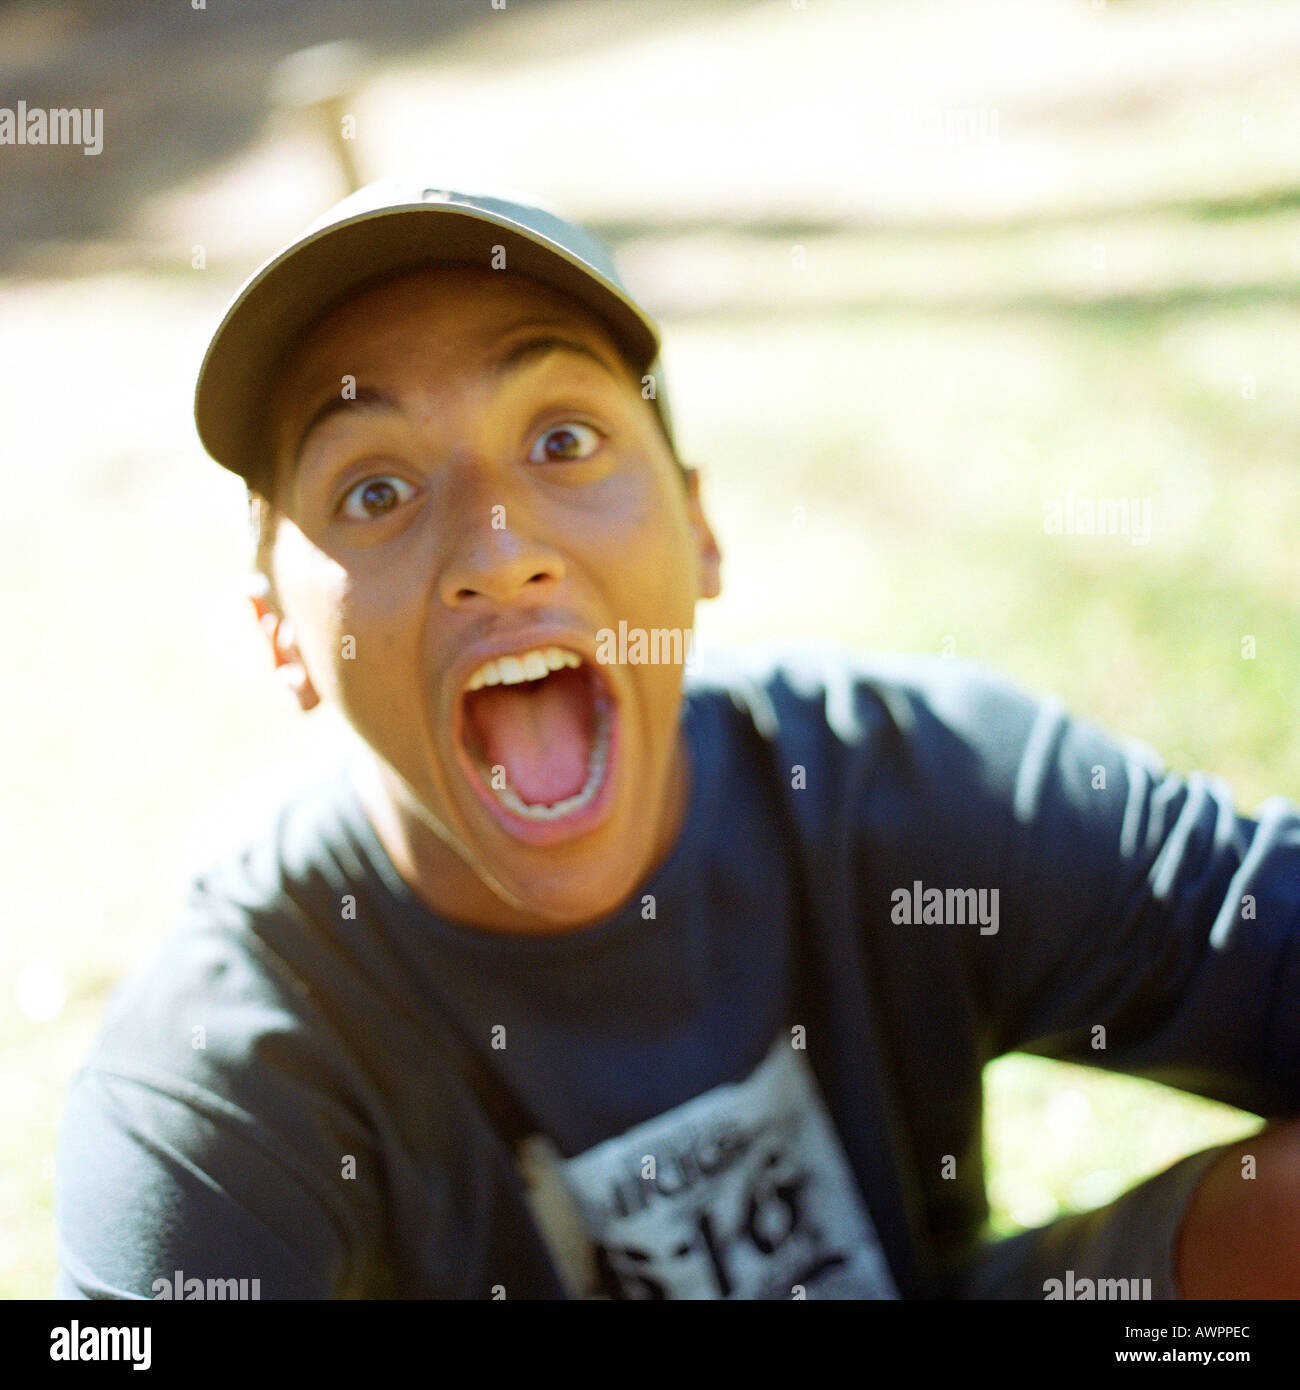 Teenage boy opening mouth, portrait - Stock Image